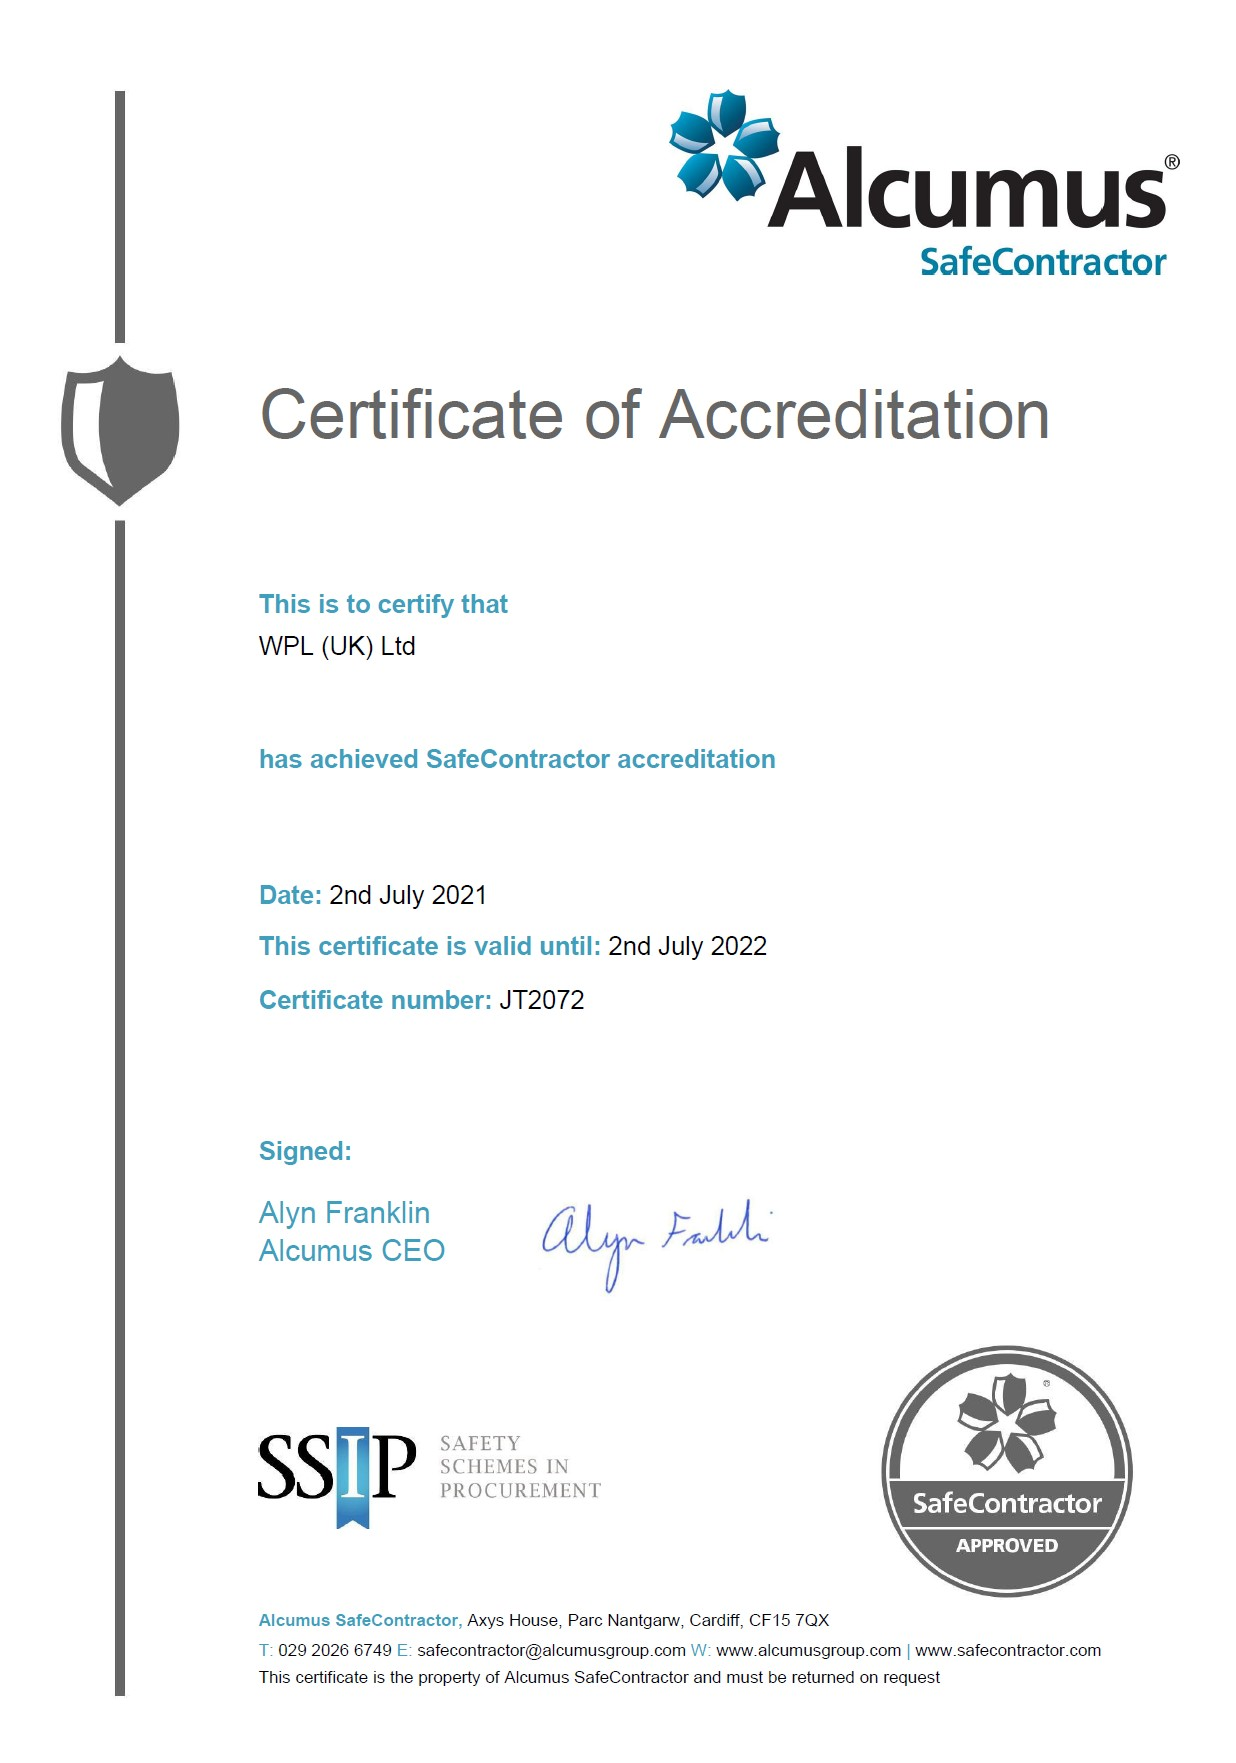 WPLUK SafeContractor to 2nd July 2022